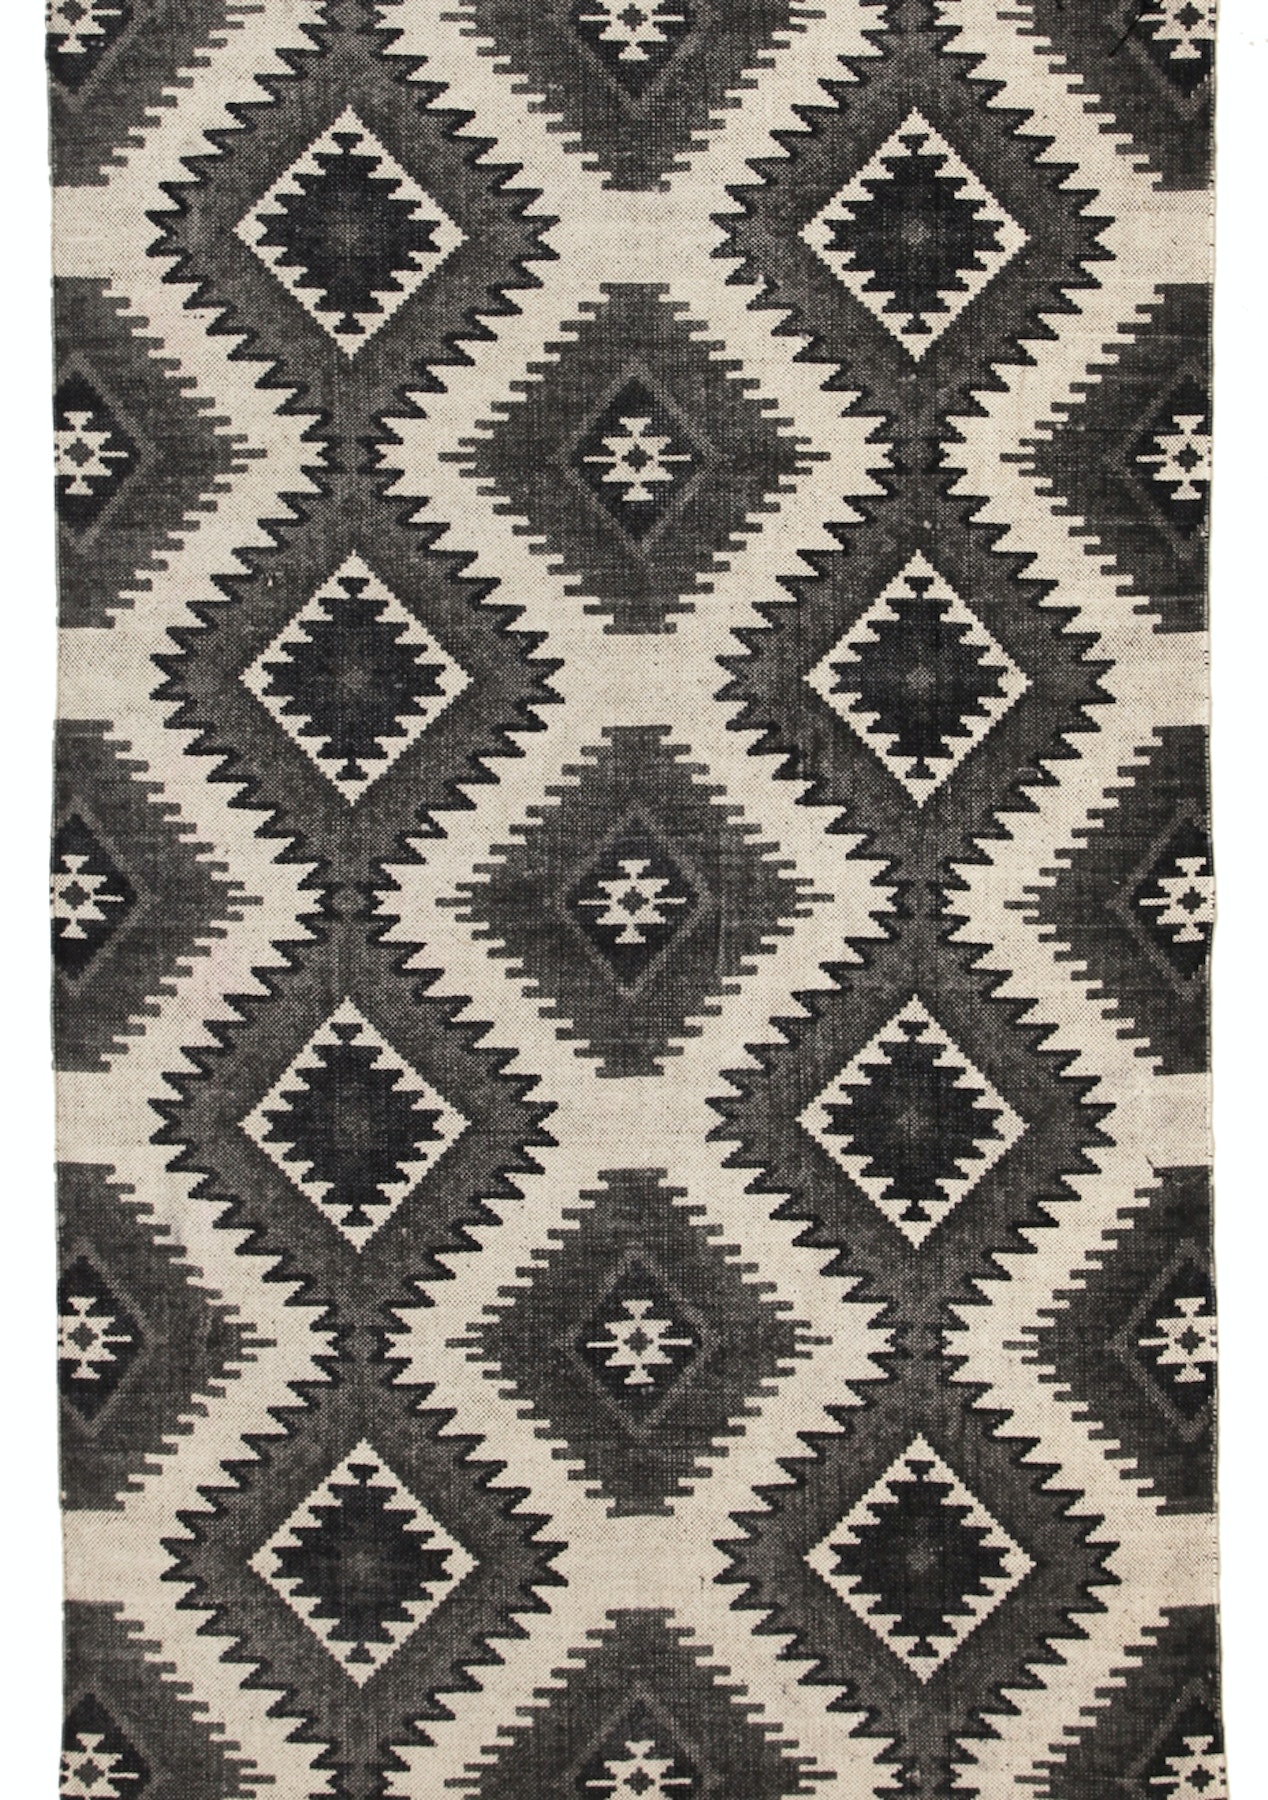 Logan b w stonewashed cotton tribal diamond fringed rug 270x180cm rugs 299 under onceit